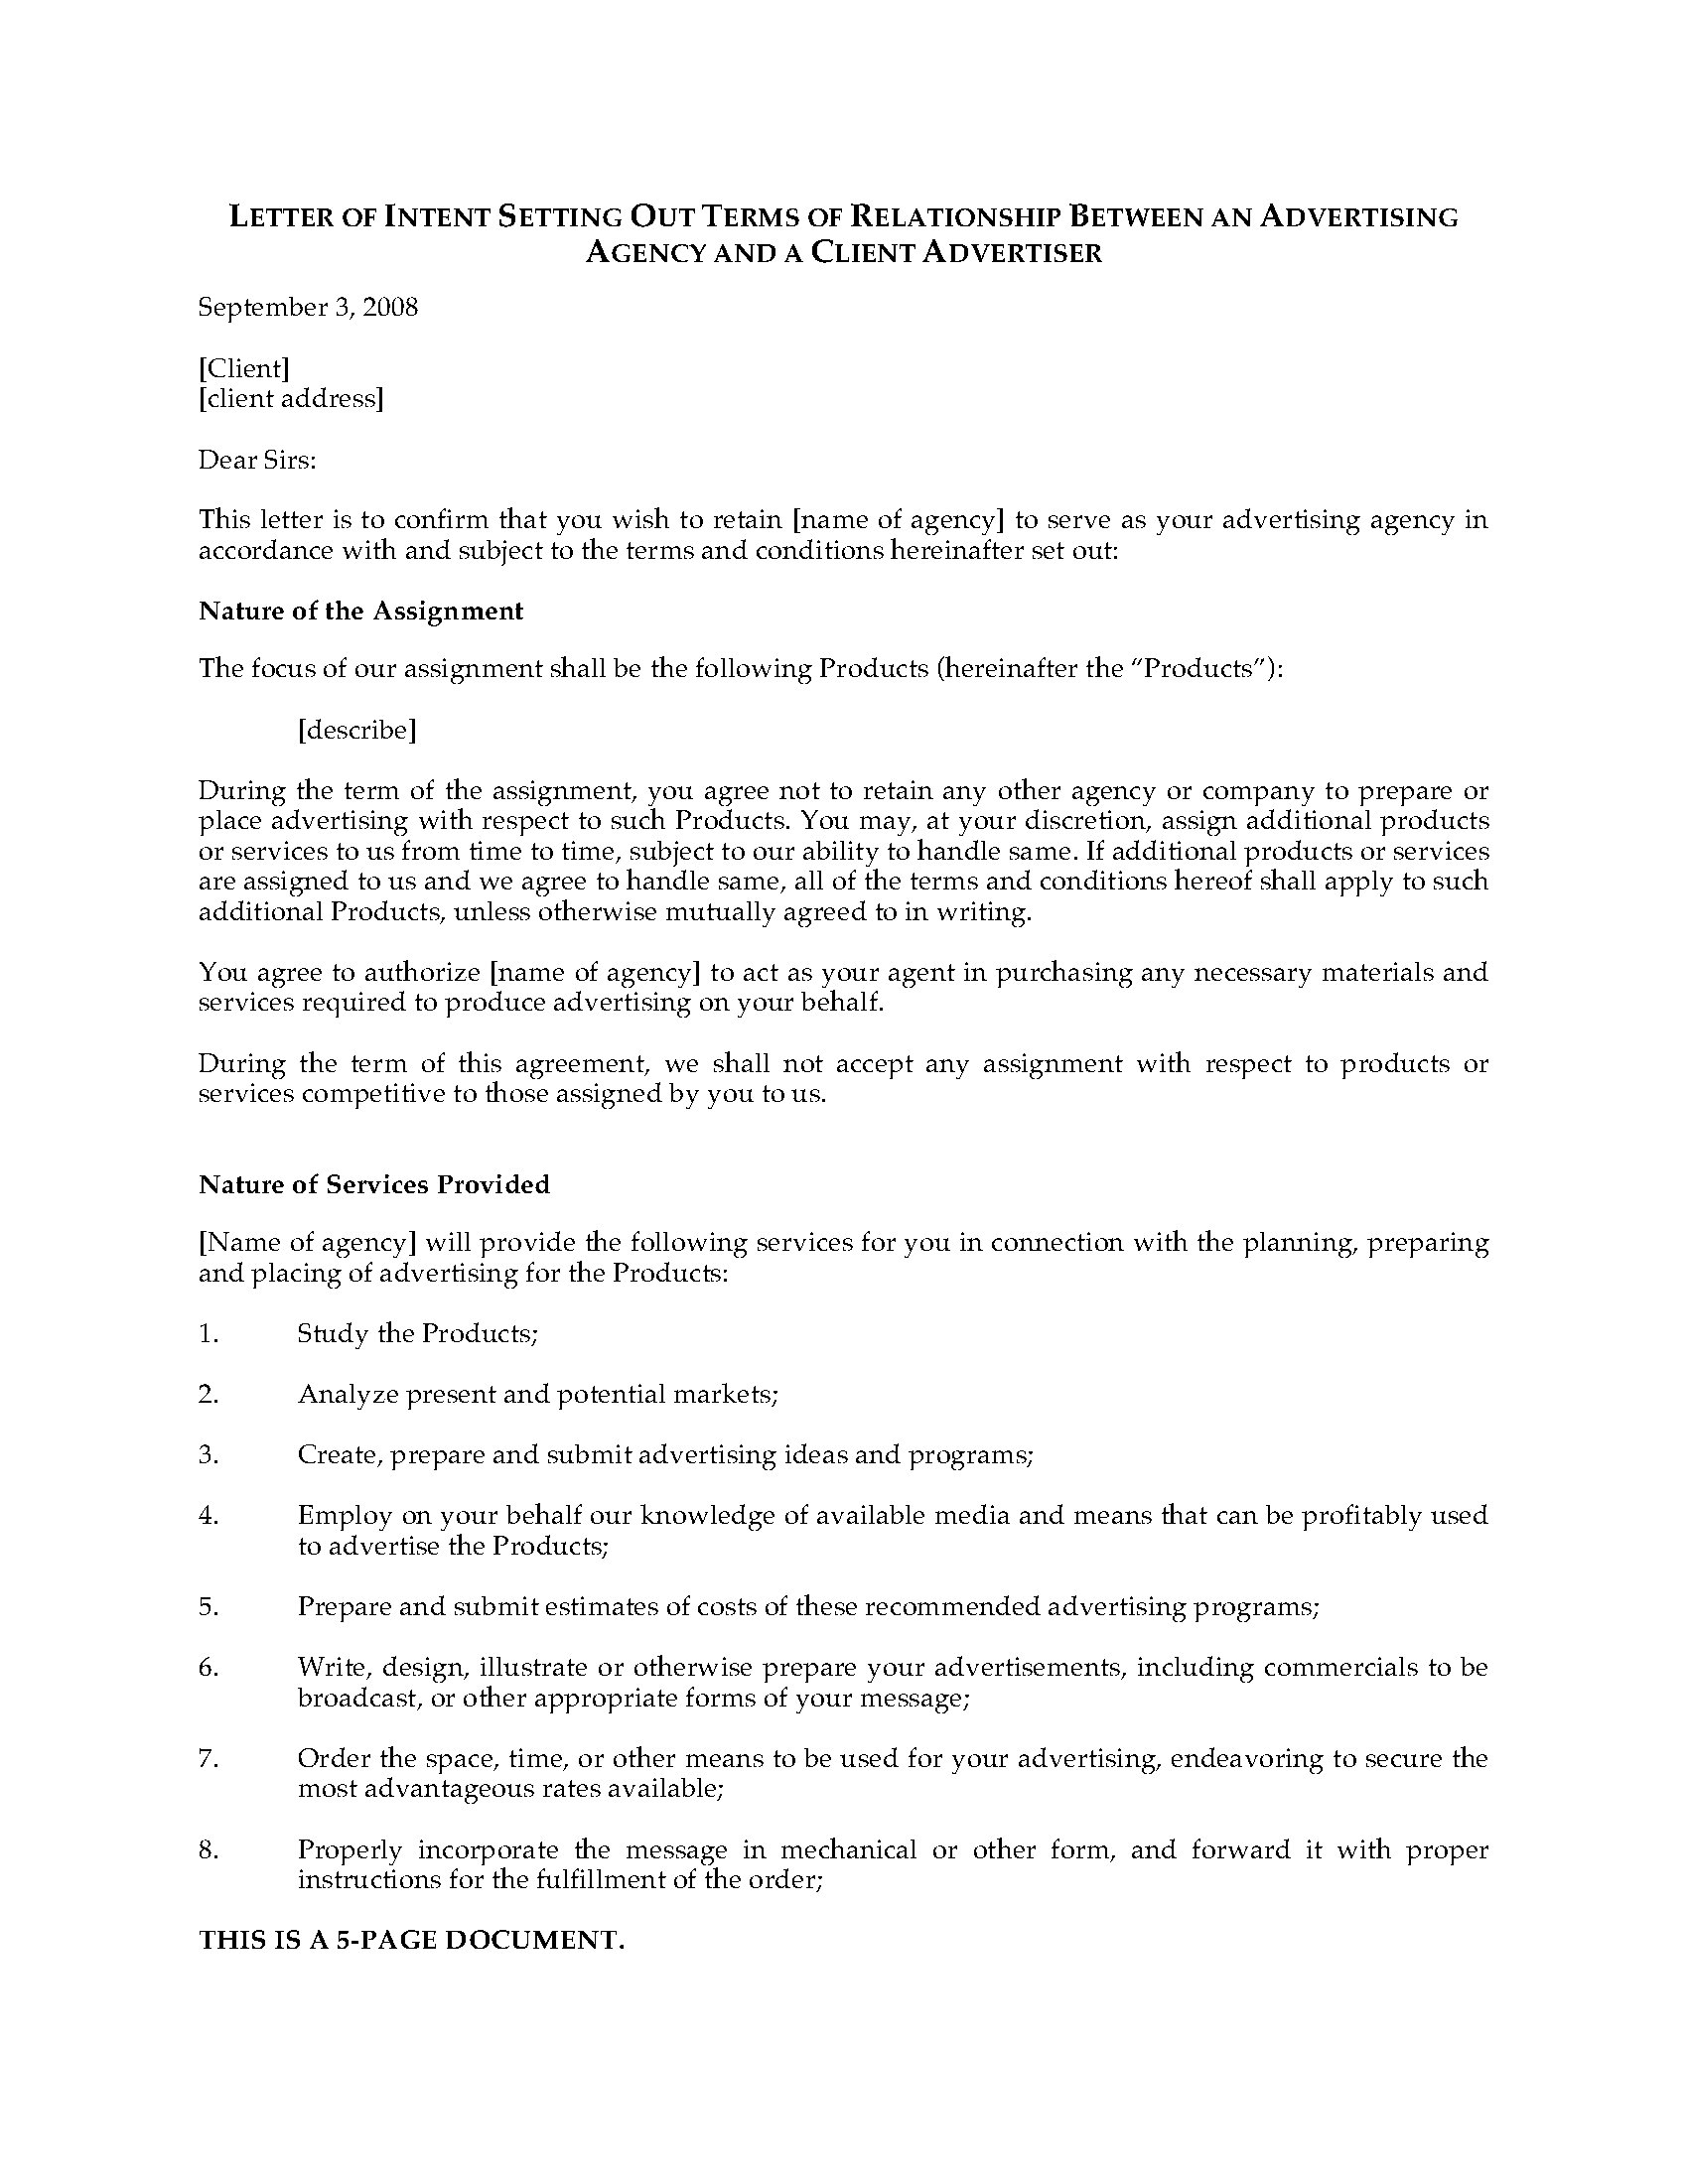 Letter Of Intent to Hire Template - Letter Intent Hiring Job Application Example Sample